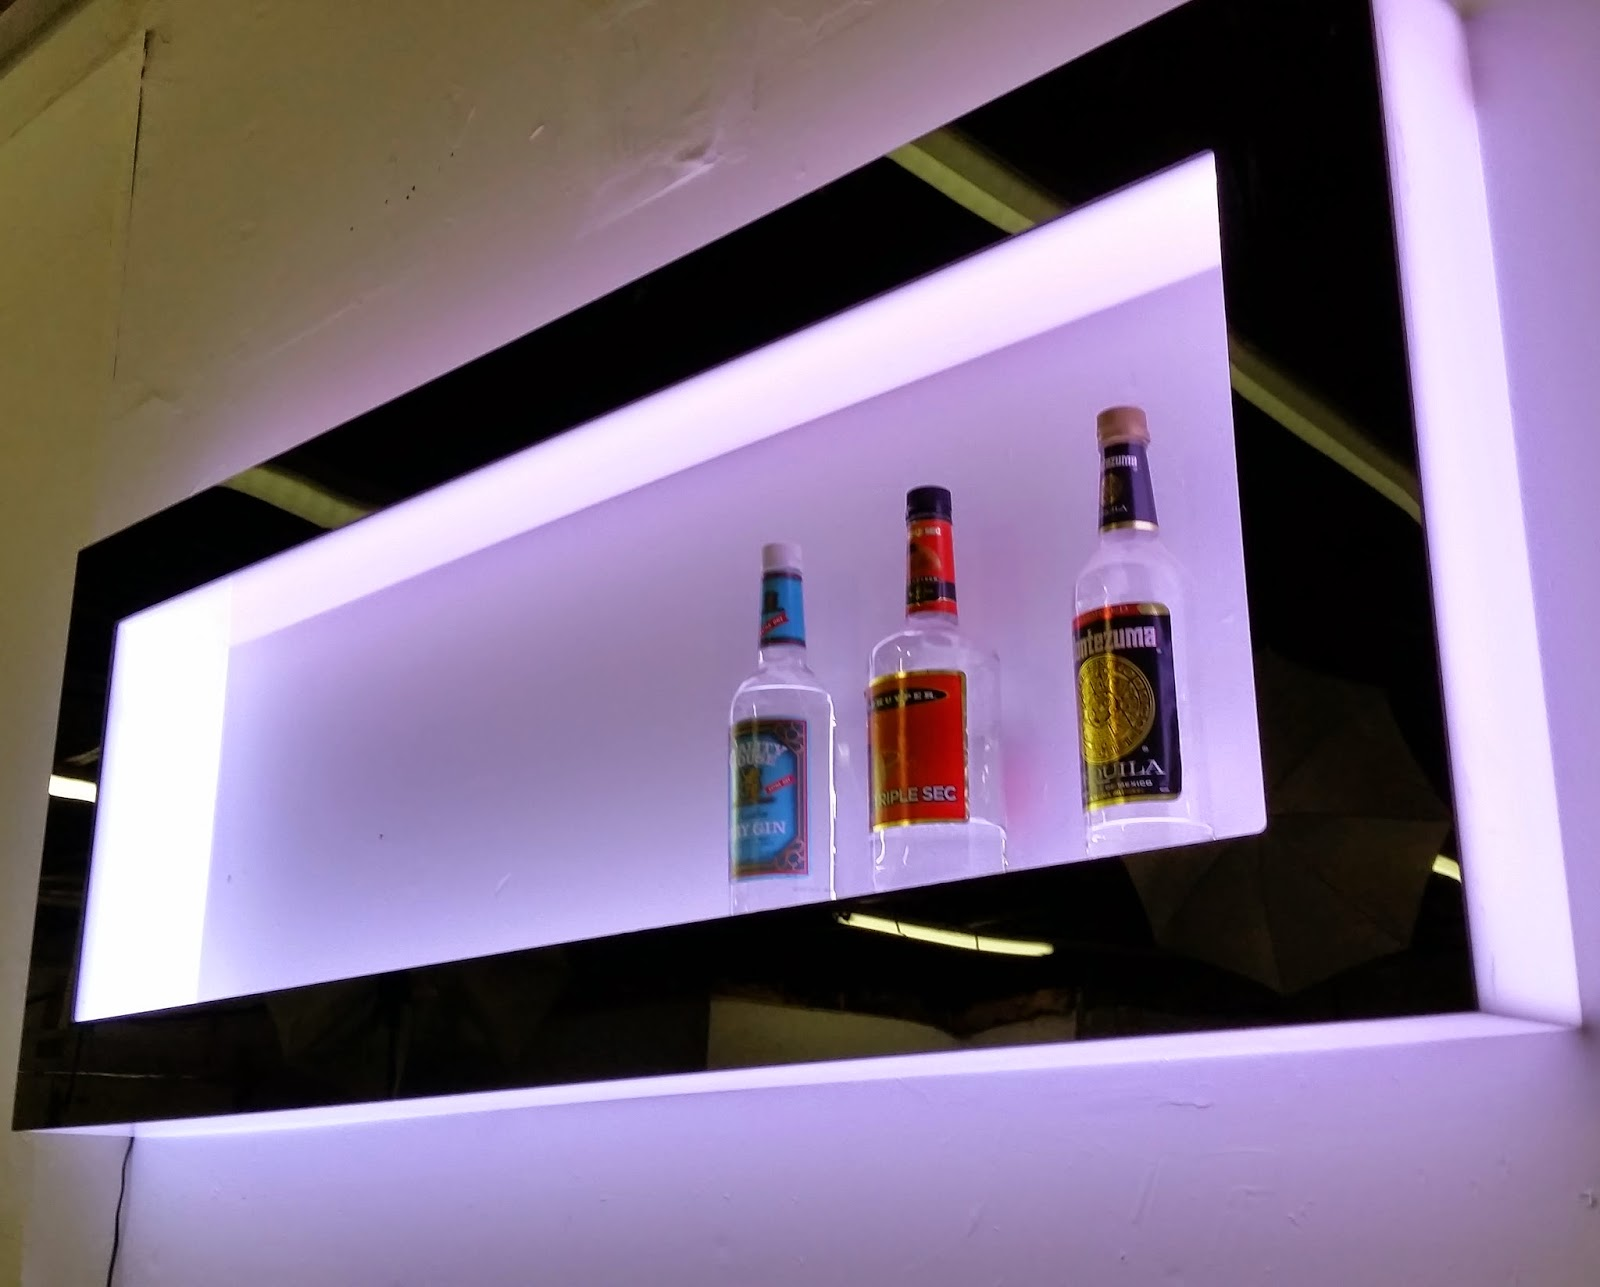 Led lighted floating shelf 16 image wall shelves floating wall shelf with lights amipublicfo Image collections